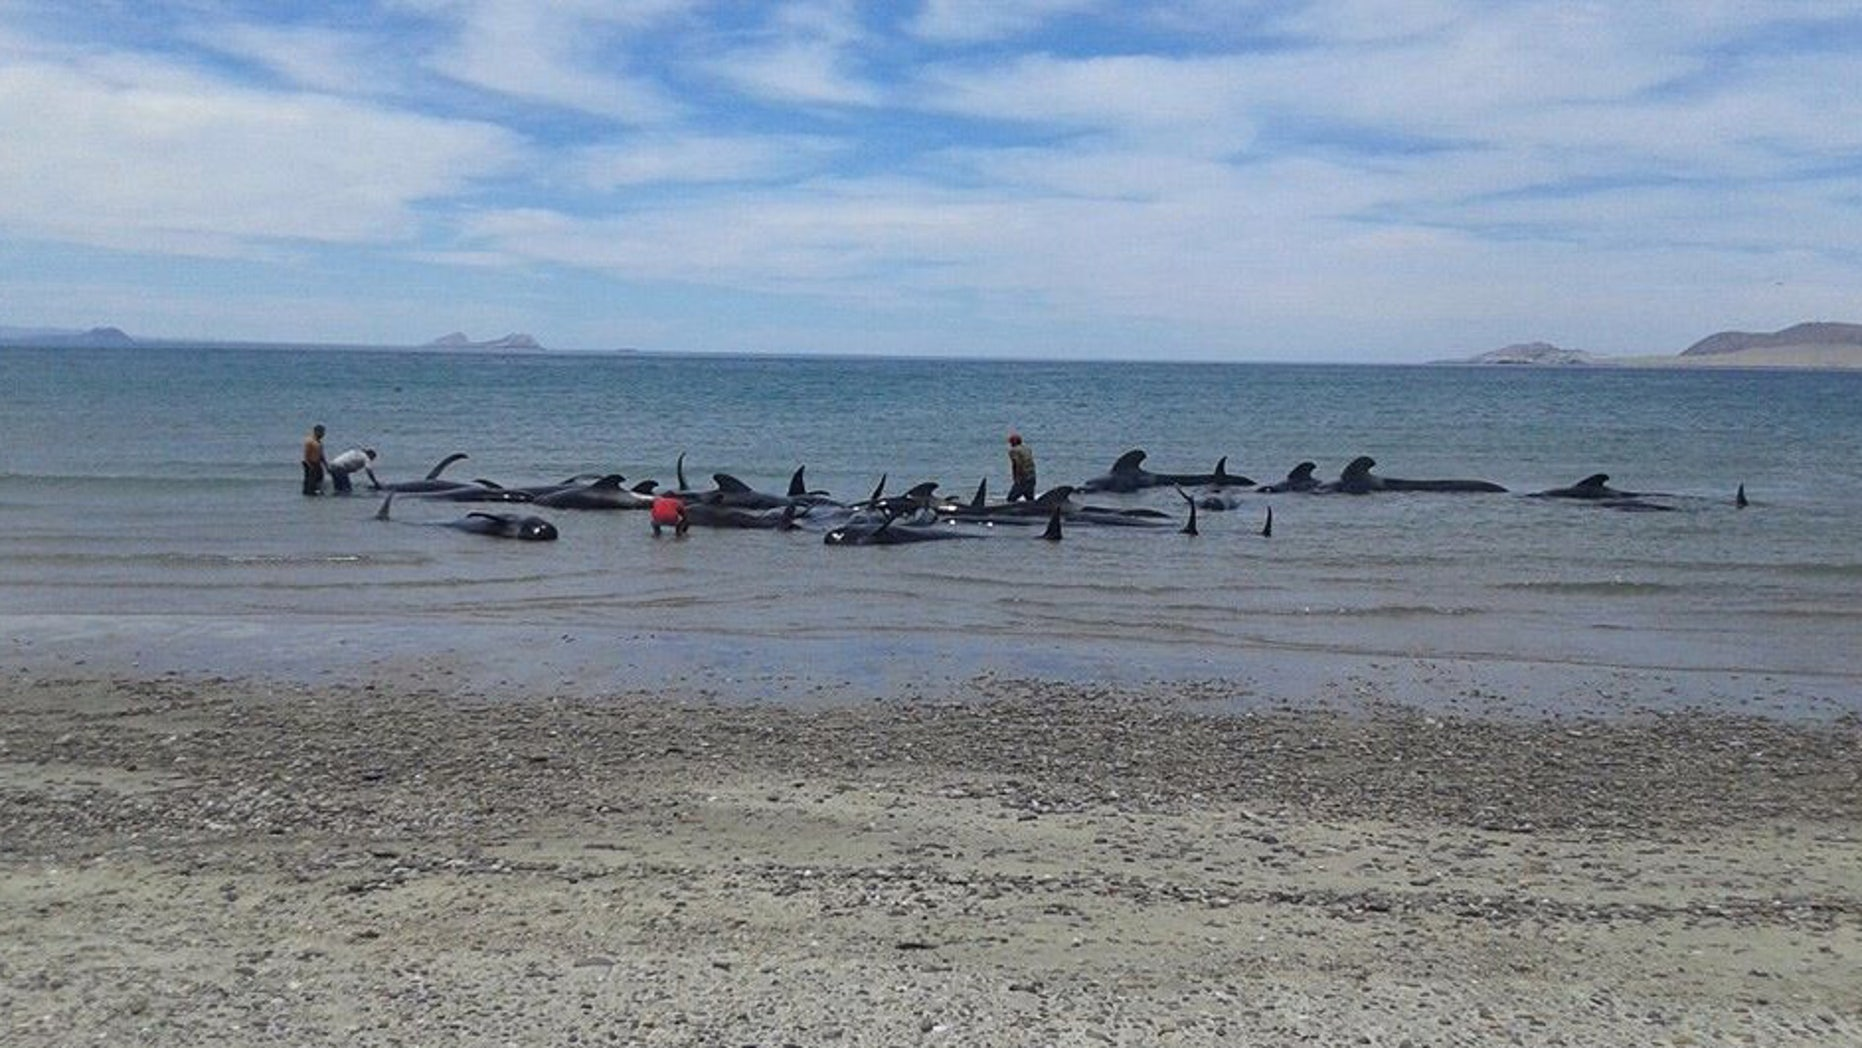 In this image released by Mexico's Secretary of the Navy on May 15, 2016, soldiers and villagers try in vain to move beached whales into deeper waters in a beach known as Playa Bufeo, near Ensenada in Mexico's Gulf of California. Mexicoâs Navy said in a statement Sunday that its personnel along with soldiers, agents of the environmental ministry and local fishermen worked Saturday and into Sunday trying to save the whales but ultimately, of the 27 that came ashore, only three were saved. (SEMAR via Associated Press)